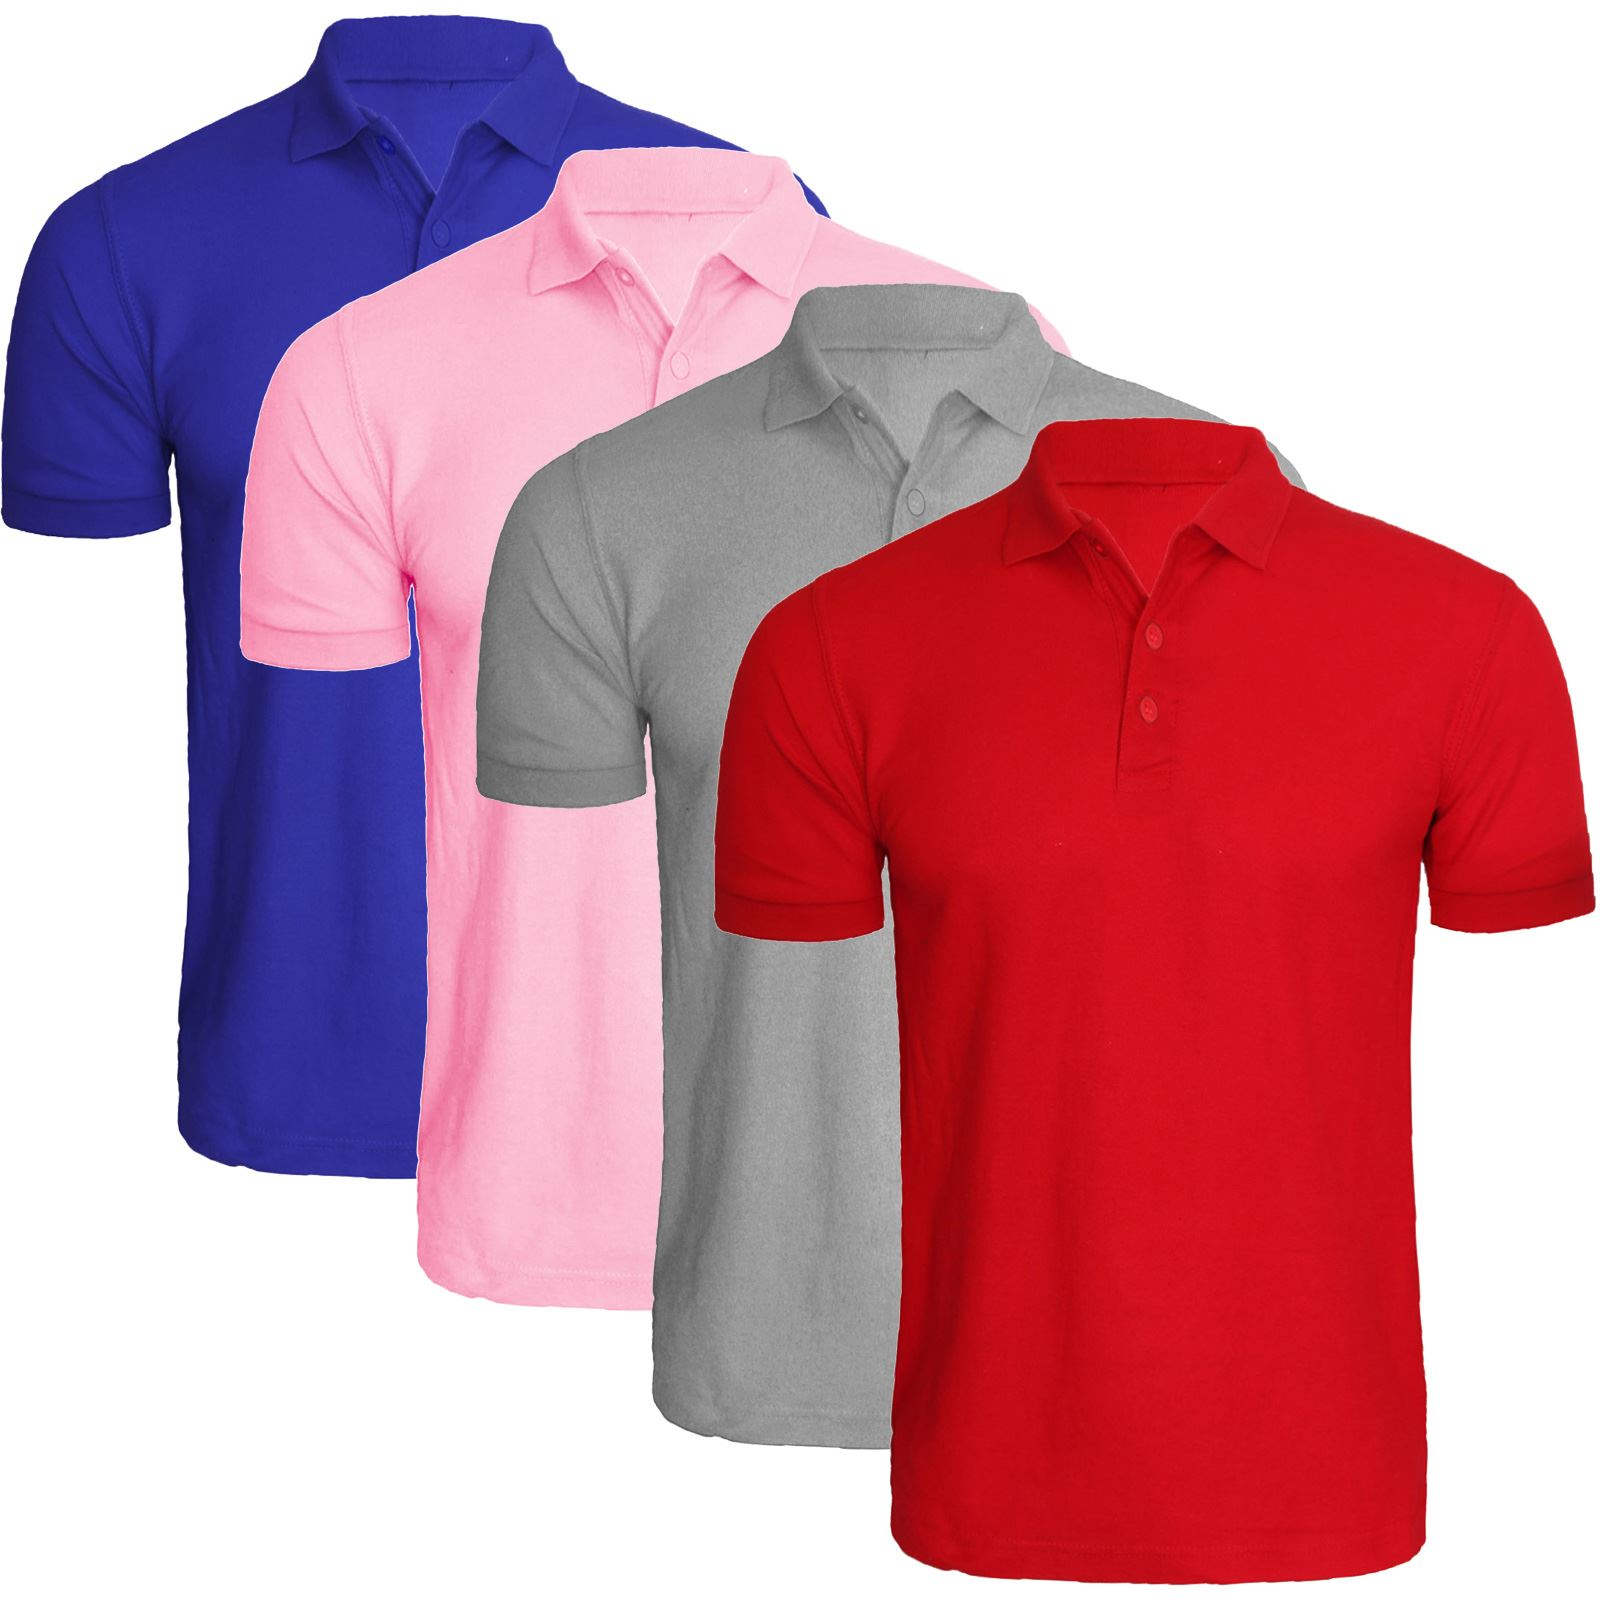 New mens plain pack of 4 polo shirts multi 4 pack cotton for Plain t shirt pack